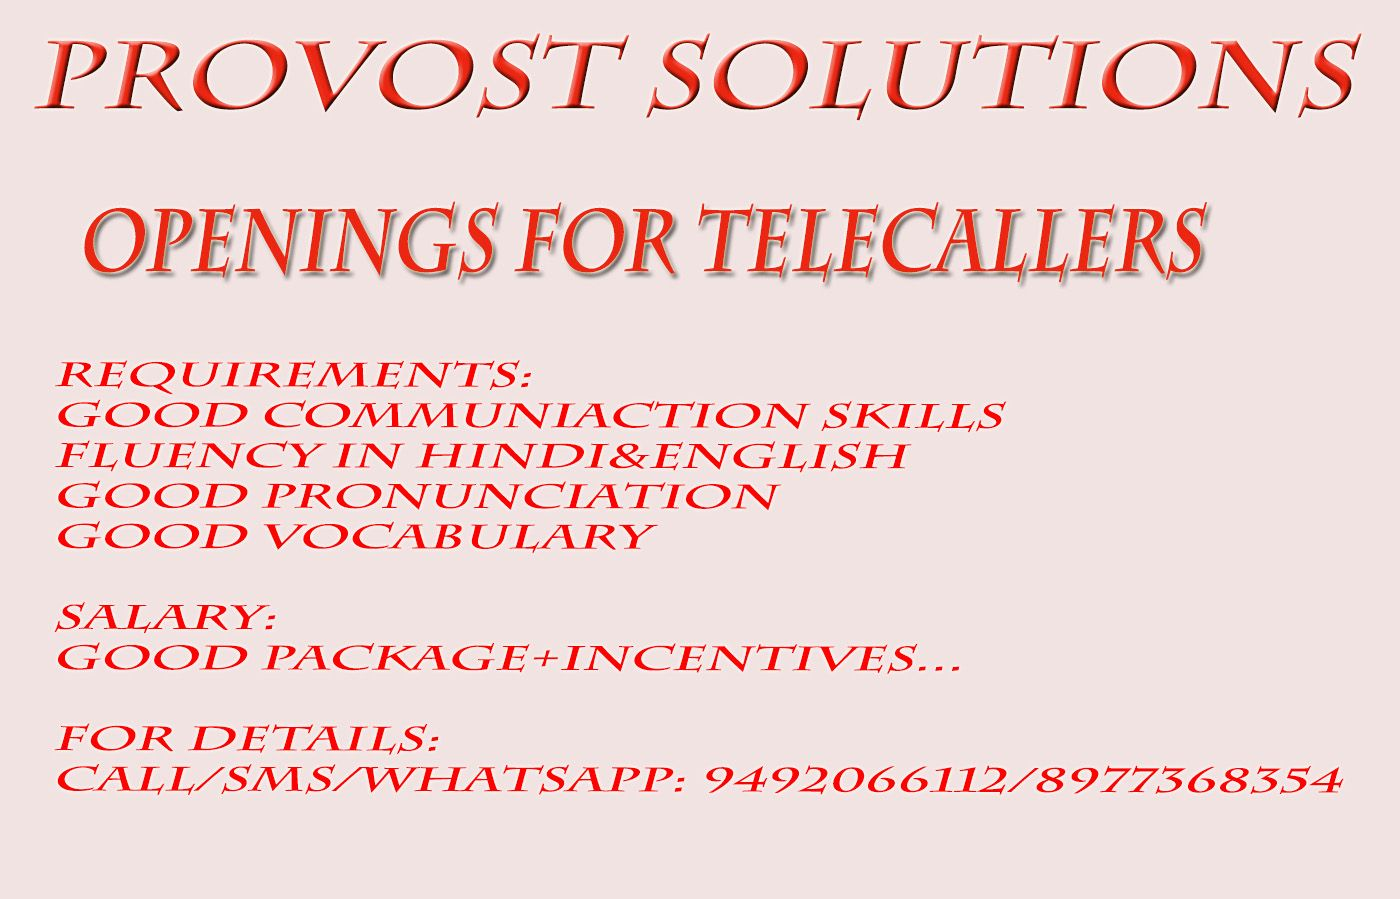 Telecaller Jobs In Hyderabad Bpo Telecalling Jobs Hyderabad Telugu